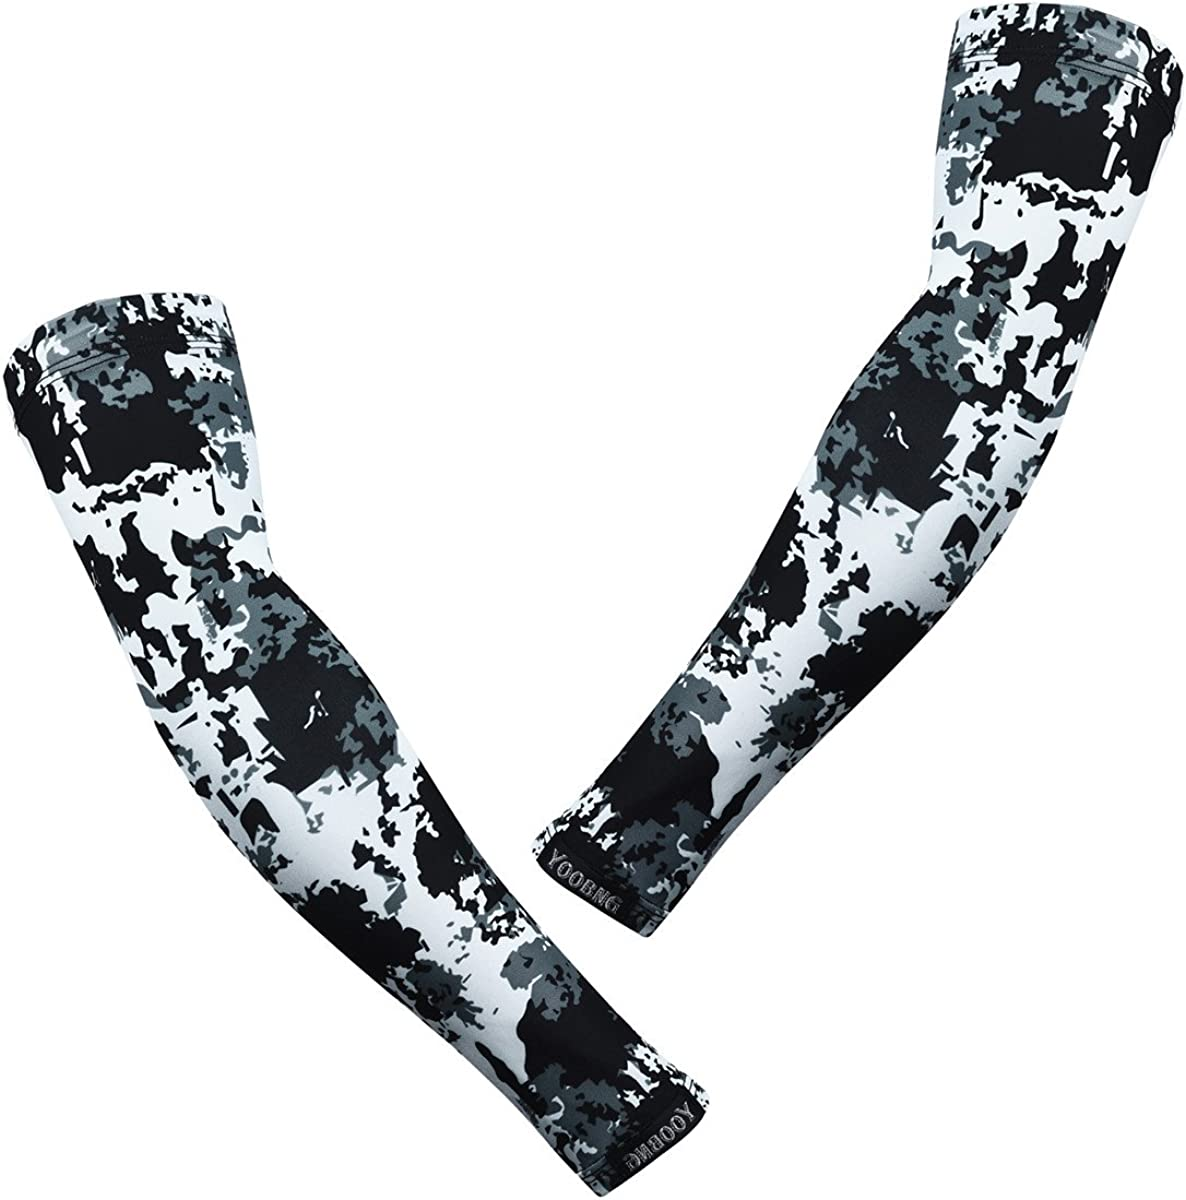 YOOBNG Arm Sleeves Camo Camouflage UV Protection Compression Cooling for Cycling Golf Basketball Running and Other Sports Men Women Youth Kids One Pair